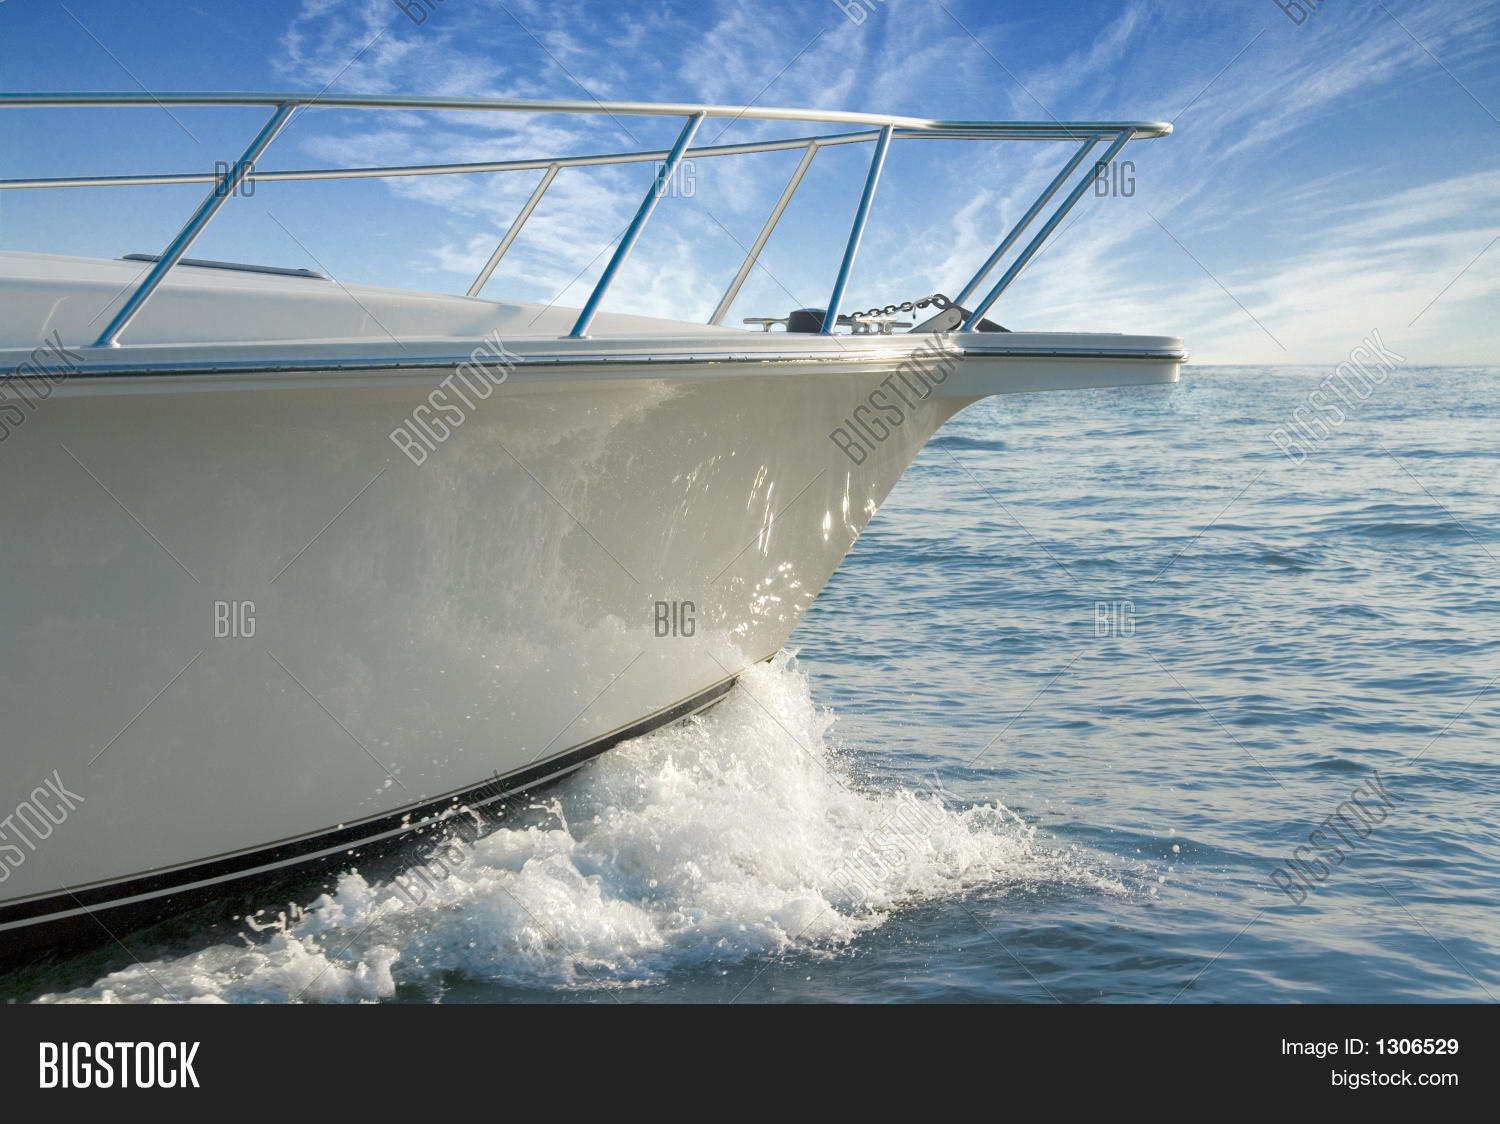 Bow Of A Boat >> Power Boat Bow Wake Image Photo Free Trial Bigstock